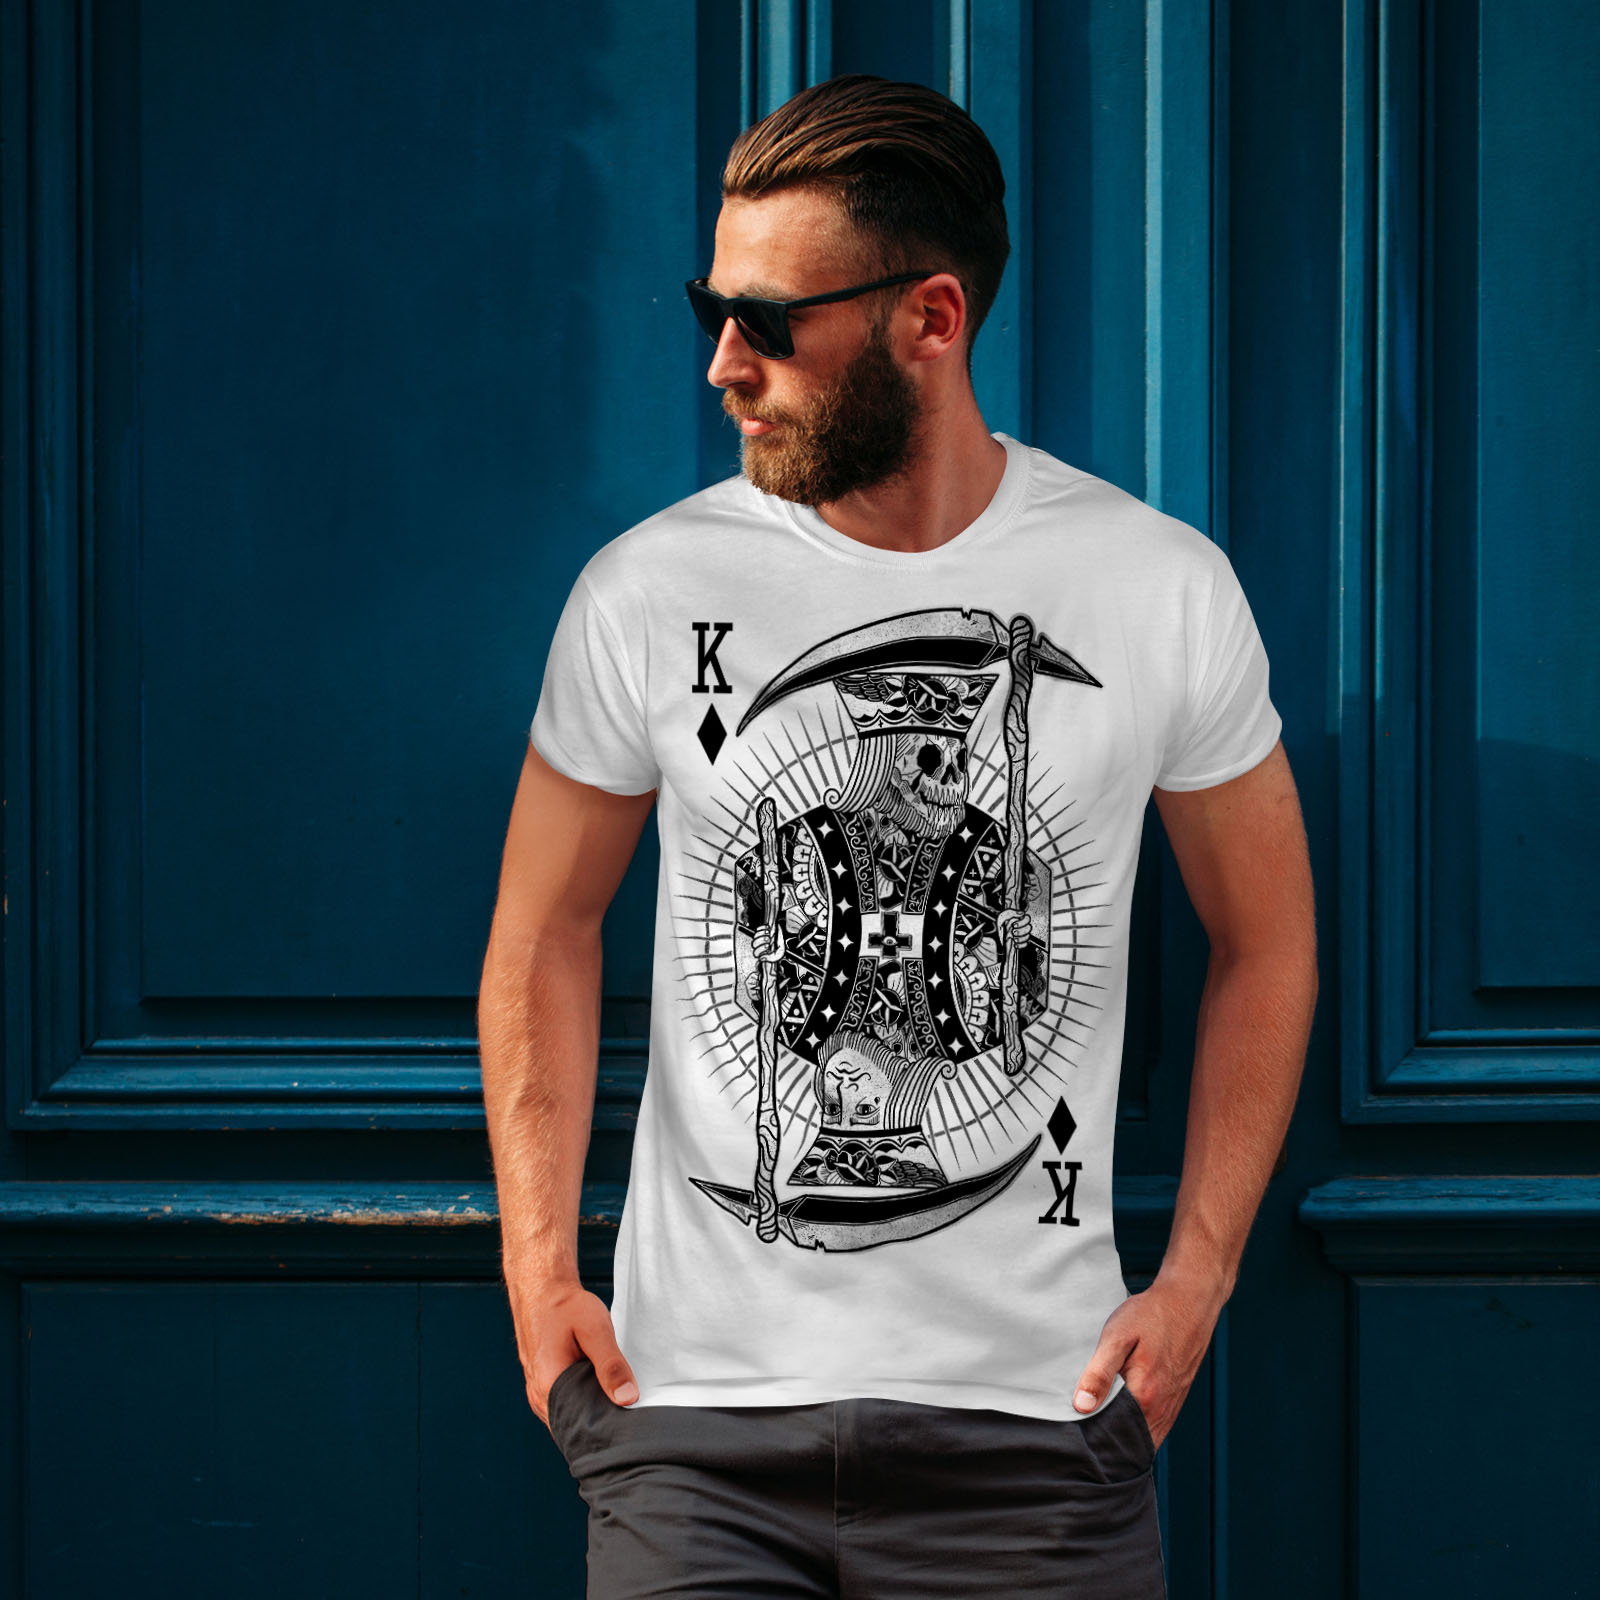 Wellcoda-Poker-Horror-King-Skull-Mens-T-shirt-Graphic-Design-Printed-Tee thumbnail 10